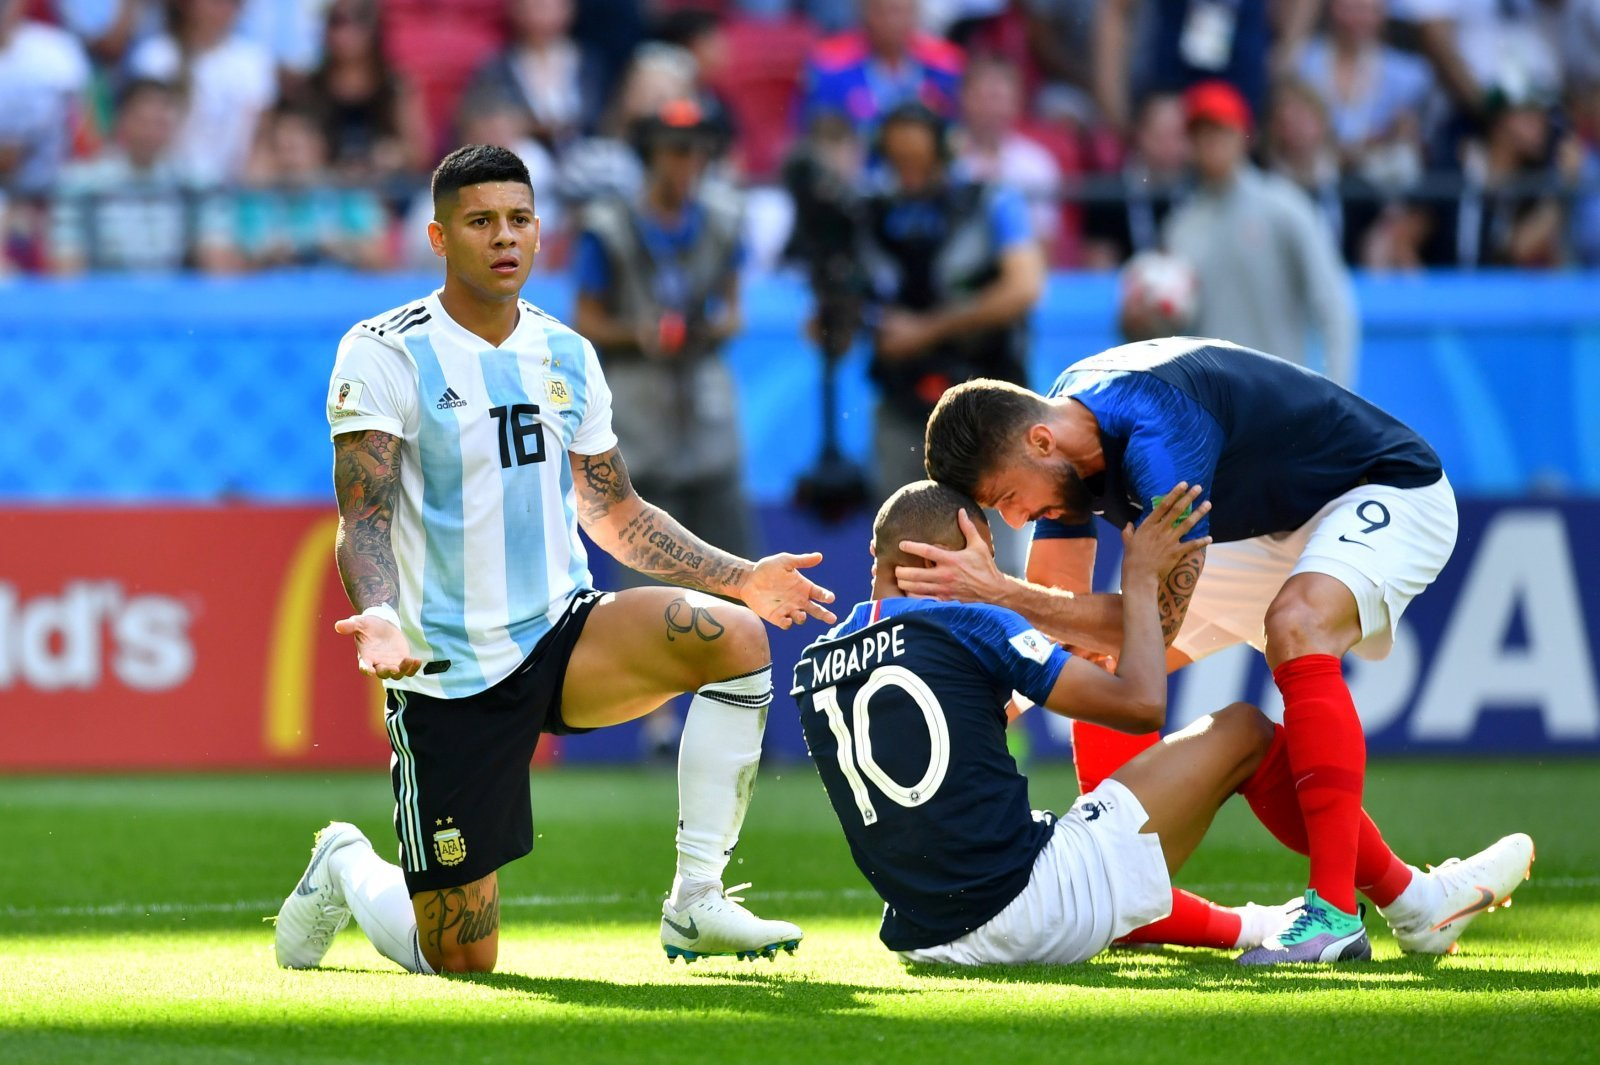 Marcos Rojo could form a formidable partnership with Yerry Mina